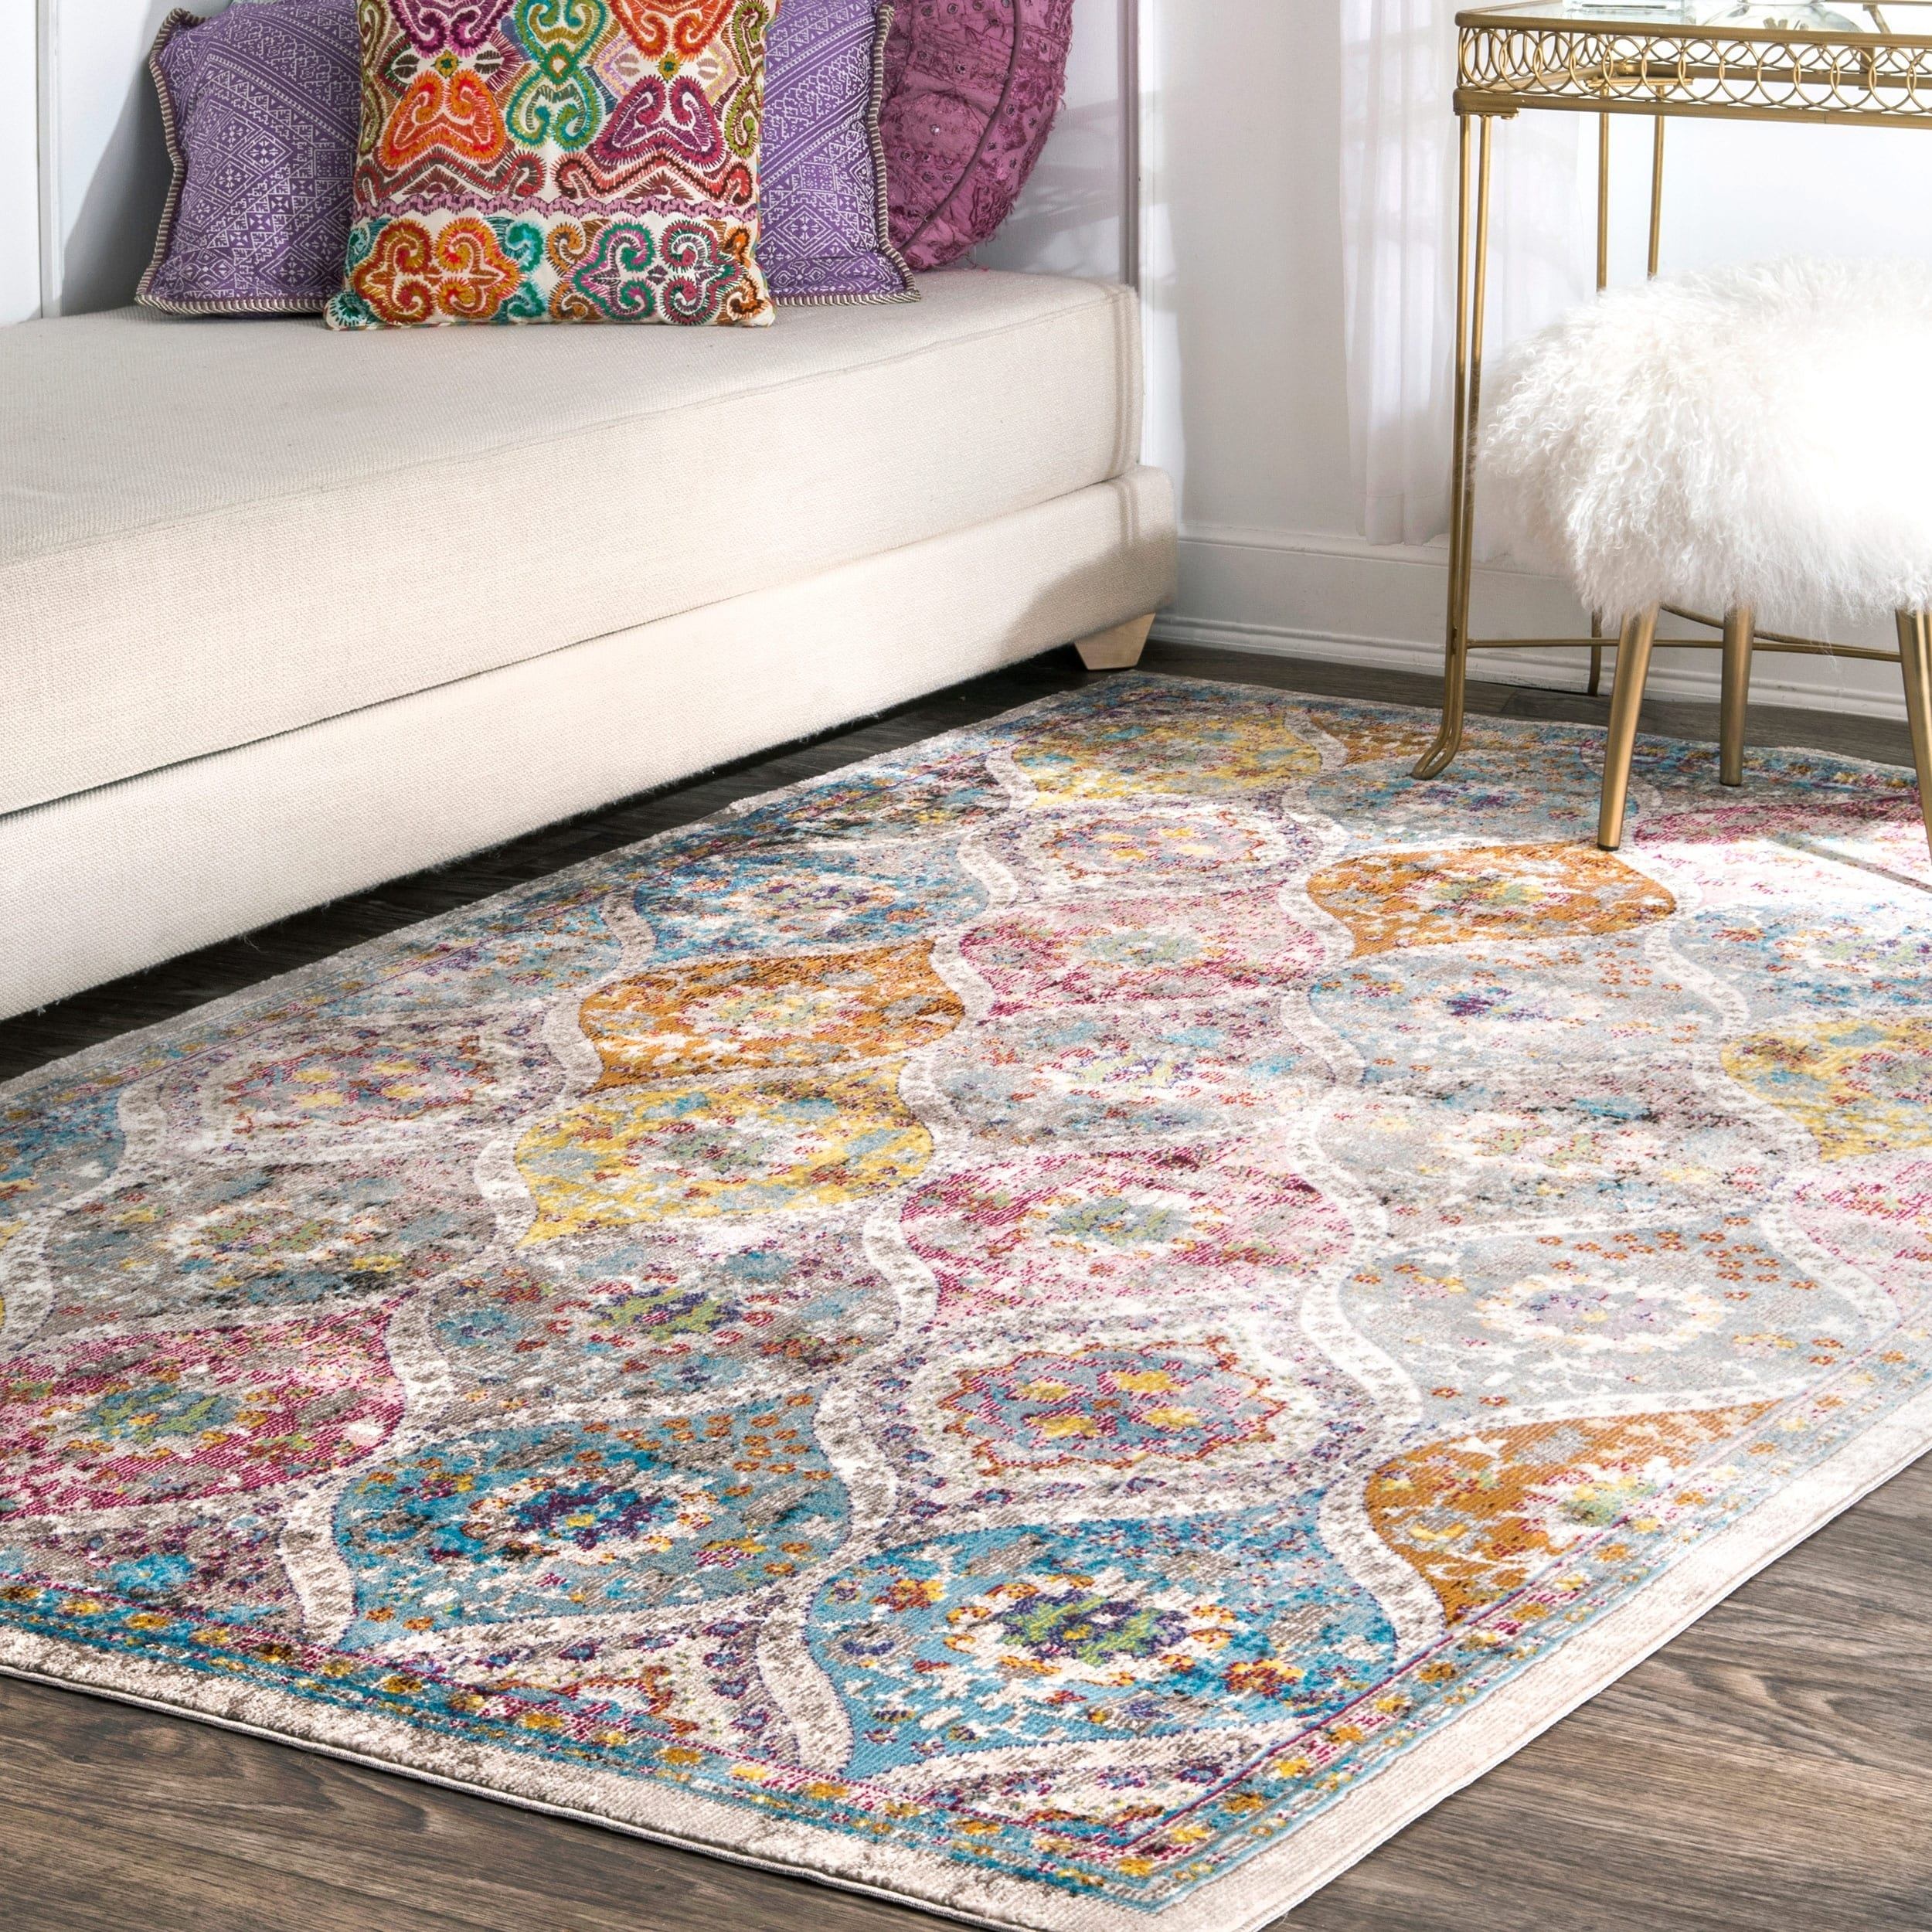 Shop Nuloom Multi Transitional Faded Floral Ogee Trellis Area Rug